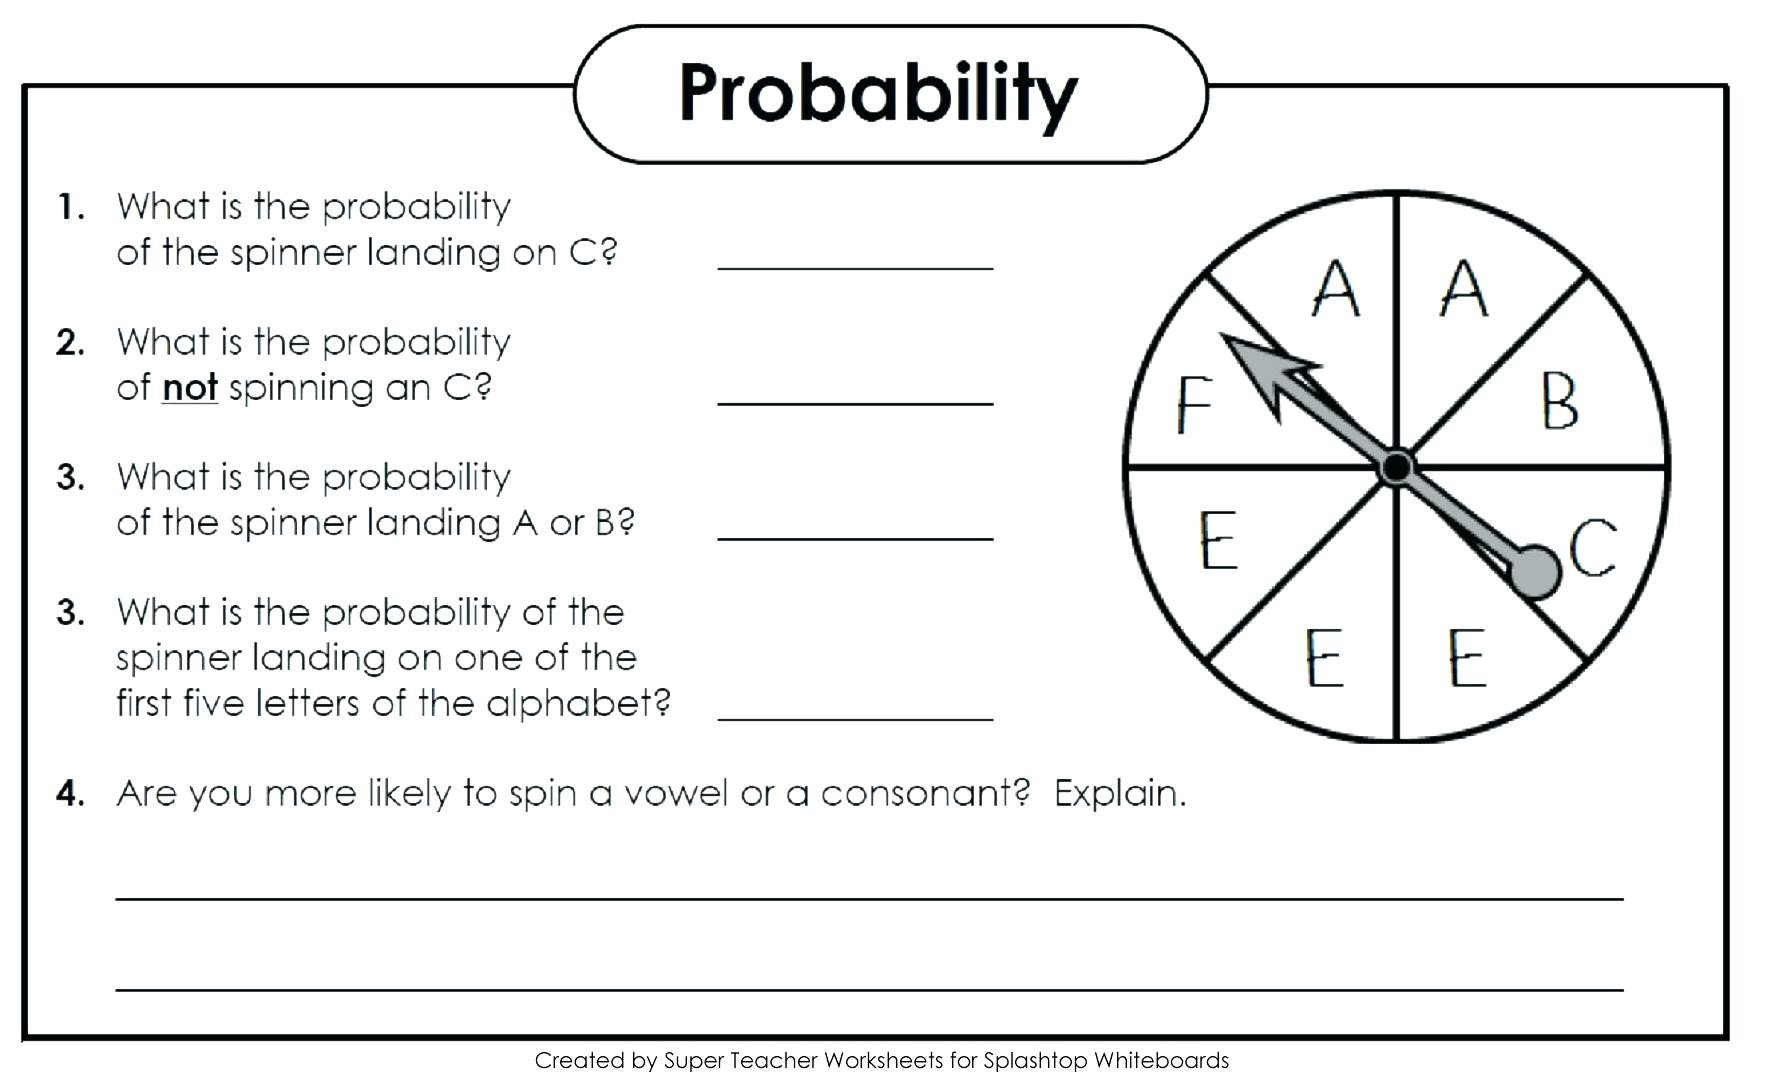 Probability Worksheet with Answers Pdf Probability Practice Problems – Leahaliub